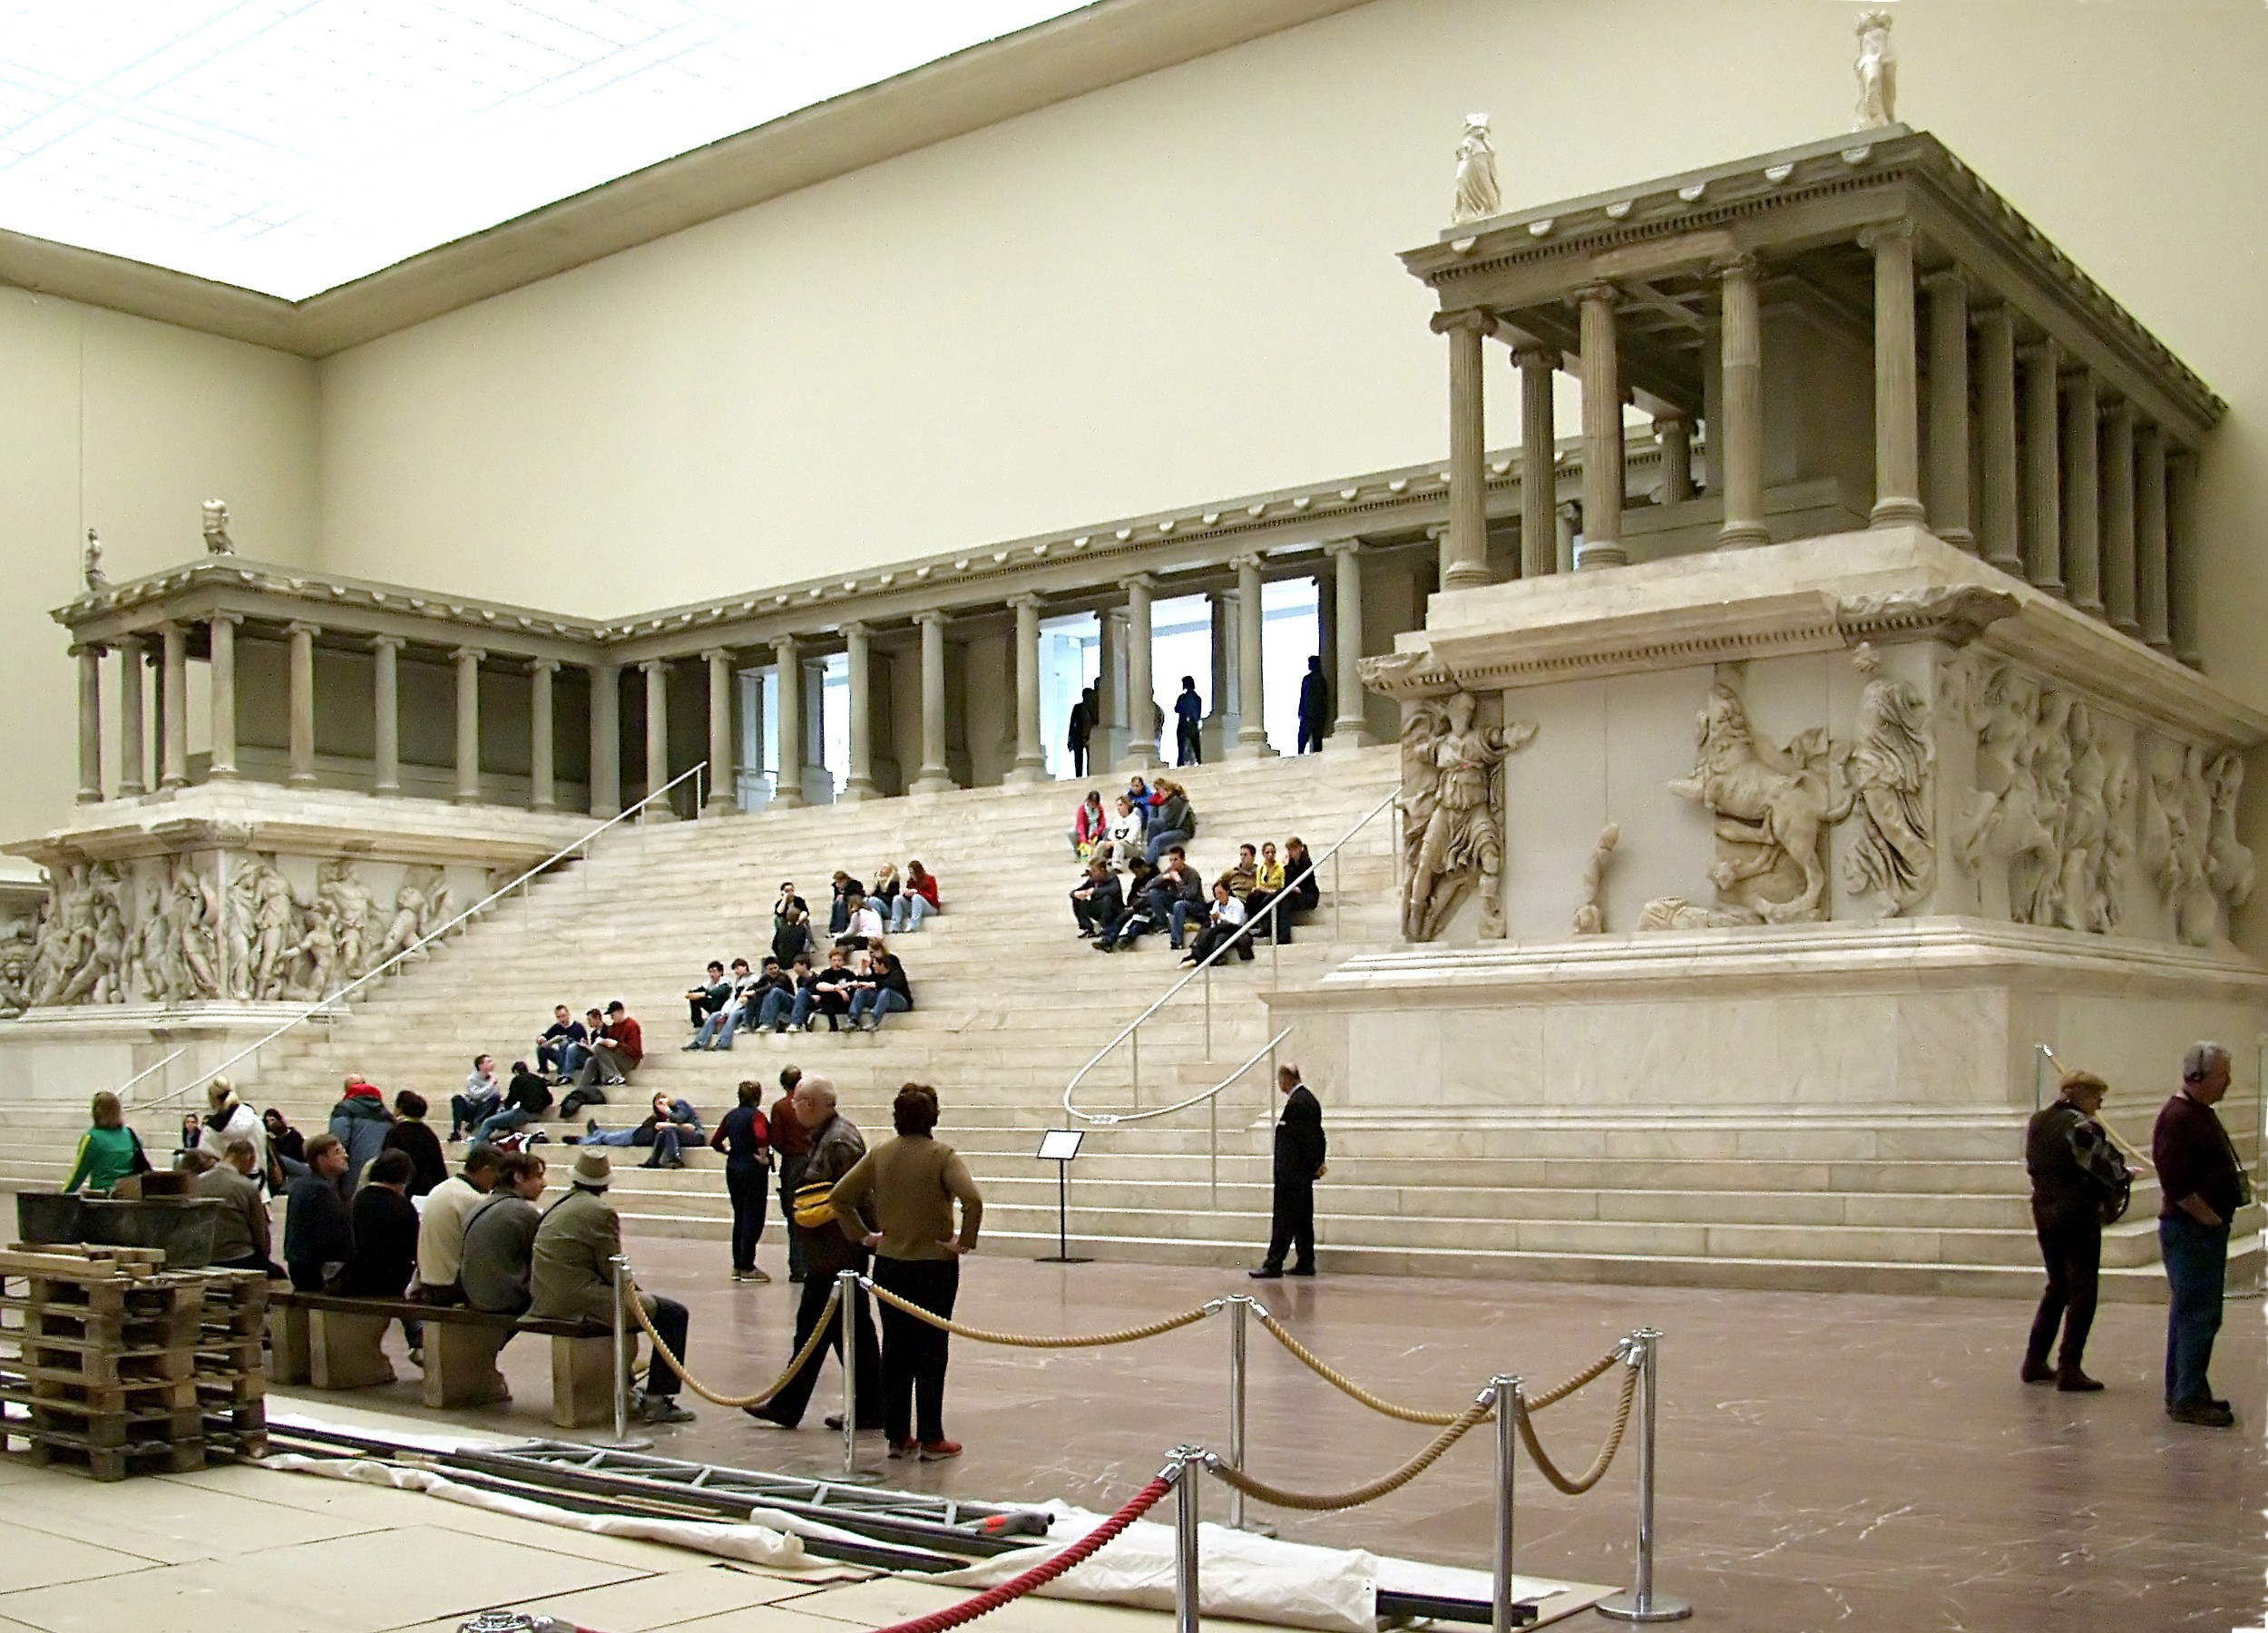 The western side of the Pergamon Altar as reconstructed in the Pergamon Museum in Berlin. © Raimond Spekking / , via Wikimedia Commons